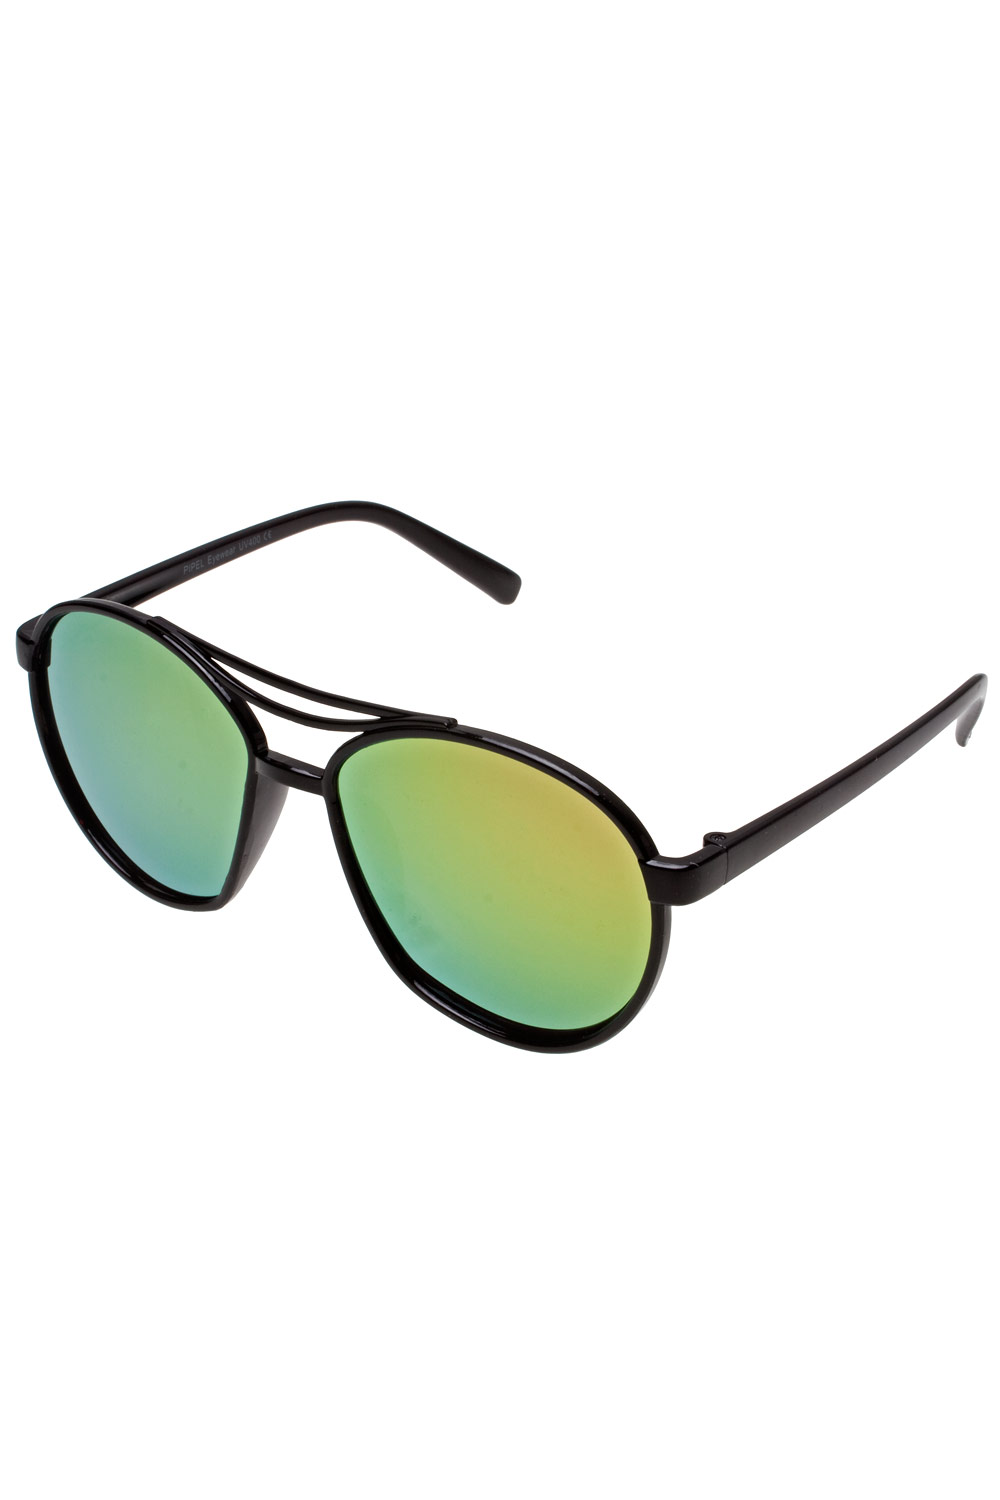 PIPEL by TANAMY sun glasses at oboy.com